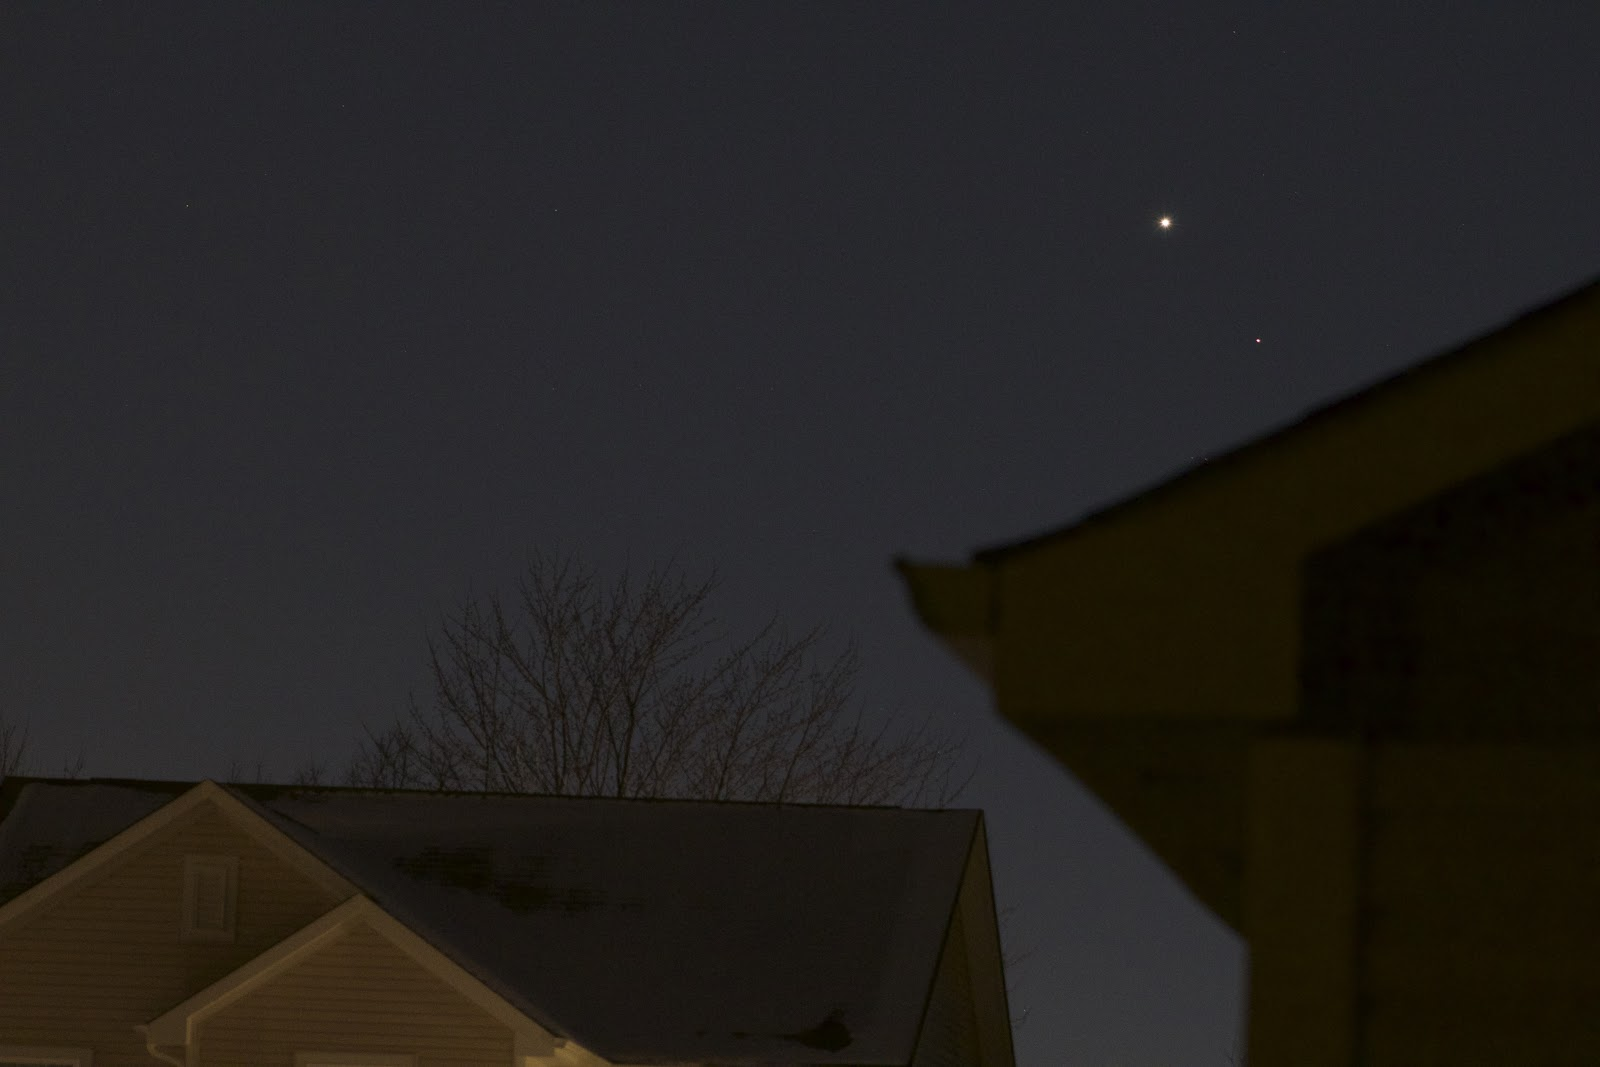 mars and venus low horizon